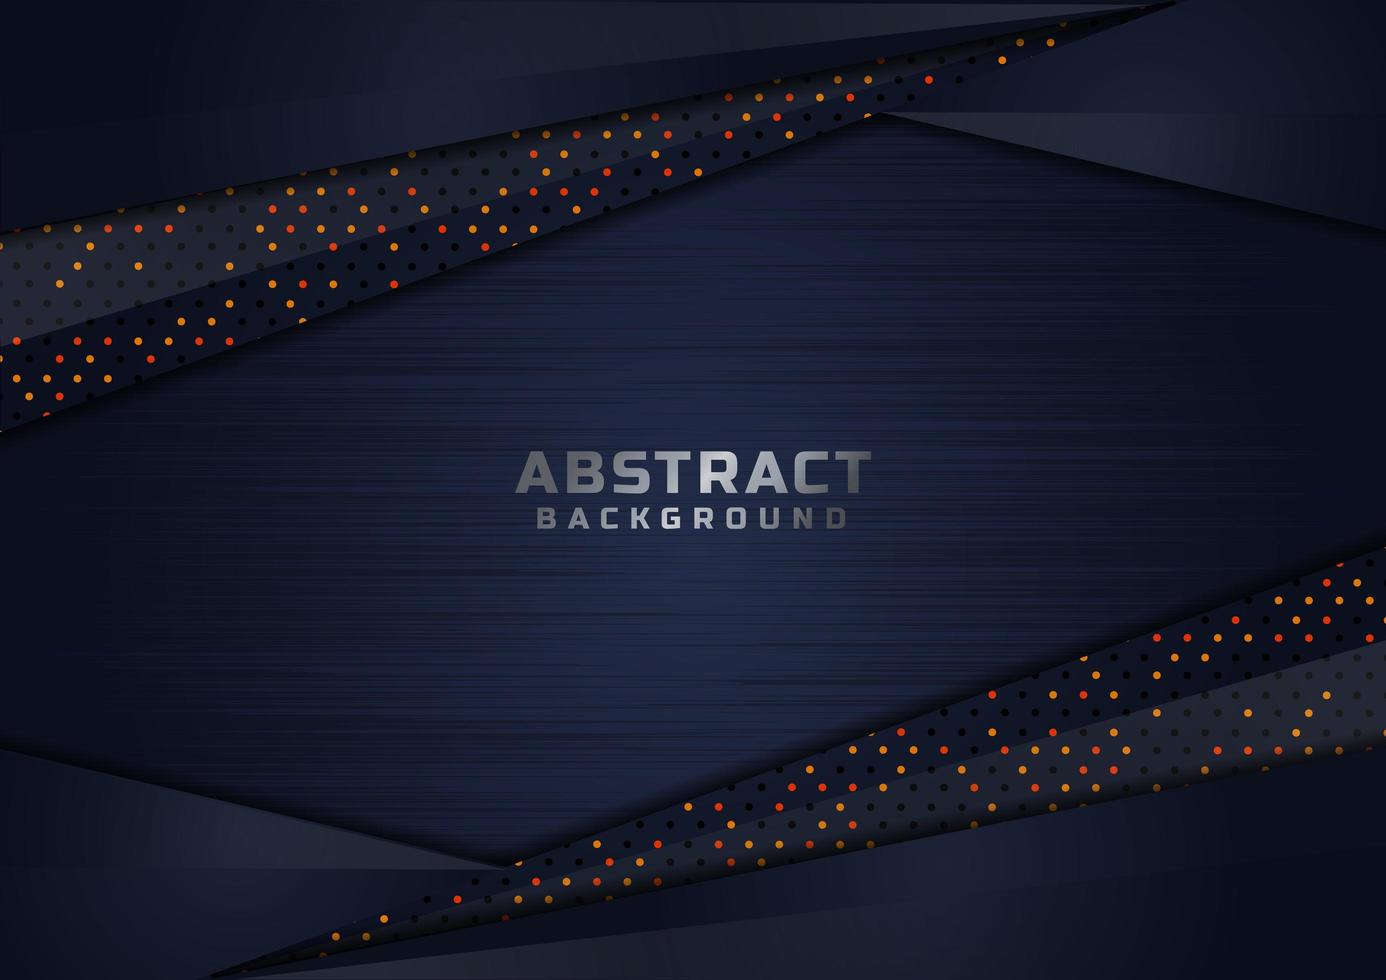 Abstract Dark Blue Overlapping Glittering Shapes Luxury Background  vector